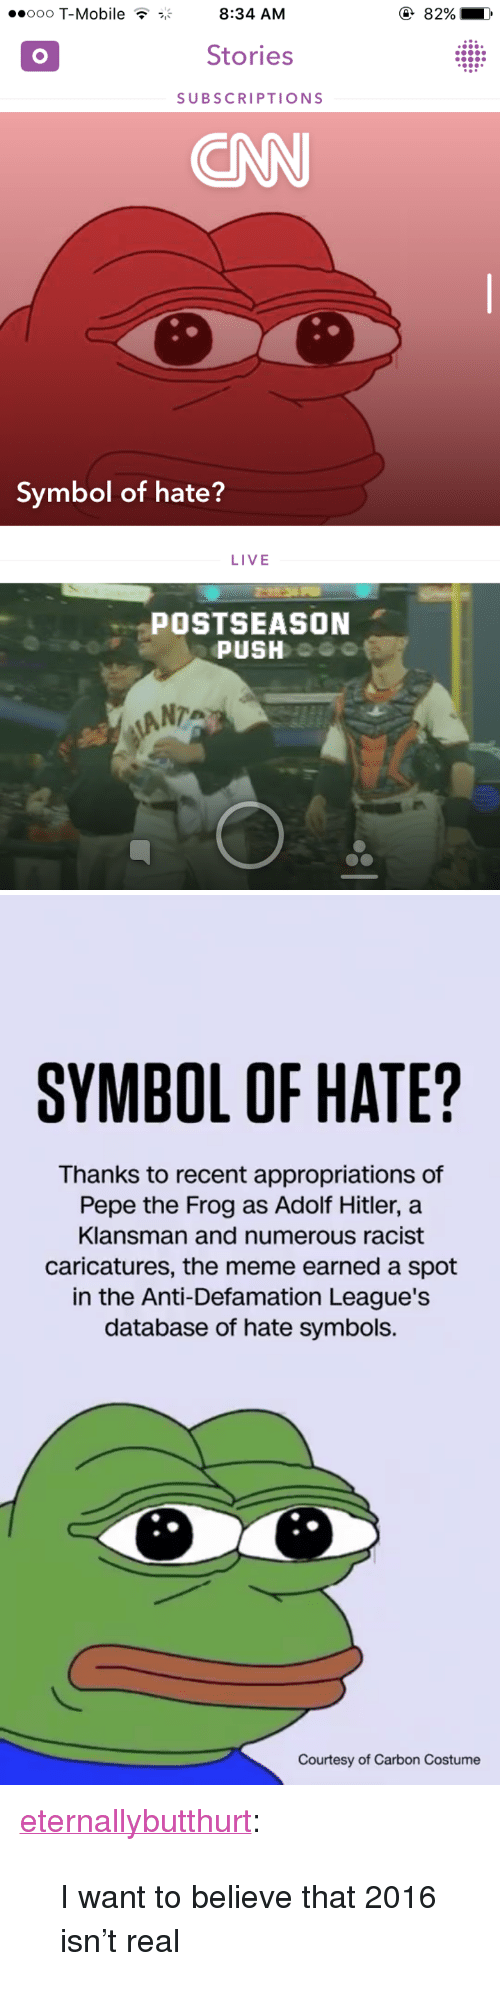 "Pepe the Frog: ooo T-Mobile T8:34 AM  82%  Stories  SUBSCRIPTIONS  ONN  Symbol of hate?  LIVE  POSTSEASON  PUSH  ANTA   SYMBOL OF HATE?  Thanks to recent appropriations of  Pepe the Frog as Adolf Hitler, a  Klansman and numerous racist  caricatures, the meme earned a spot  in the Anti-Defamation League's  database of hate symbols.  Courtesy of Carbon Costume <p><a href=""http://eternallybutthurt.tumblr.com/post/151056887413/i-want-to-believe-that-2016-isnt-real"" class=""tumblr_blog"" target=""_blank"">eternallybutthurt</a>:</p>  <blockquote><p>I want to believe that 2016 isn't real</p></blockquote>"